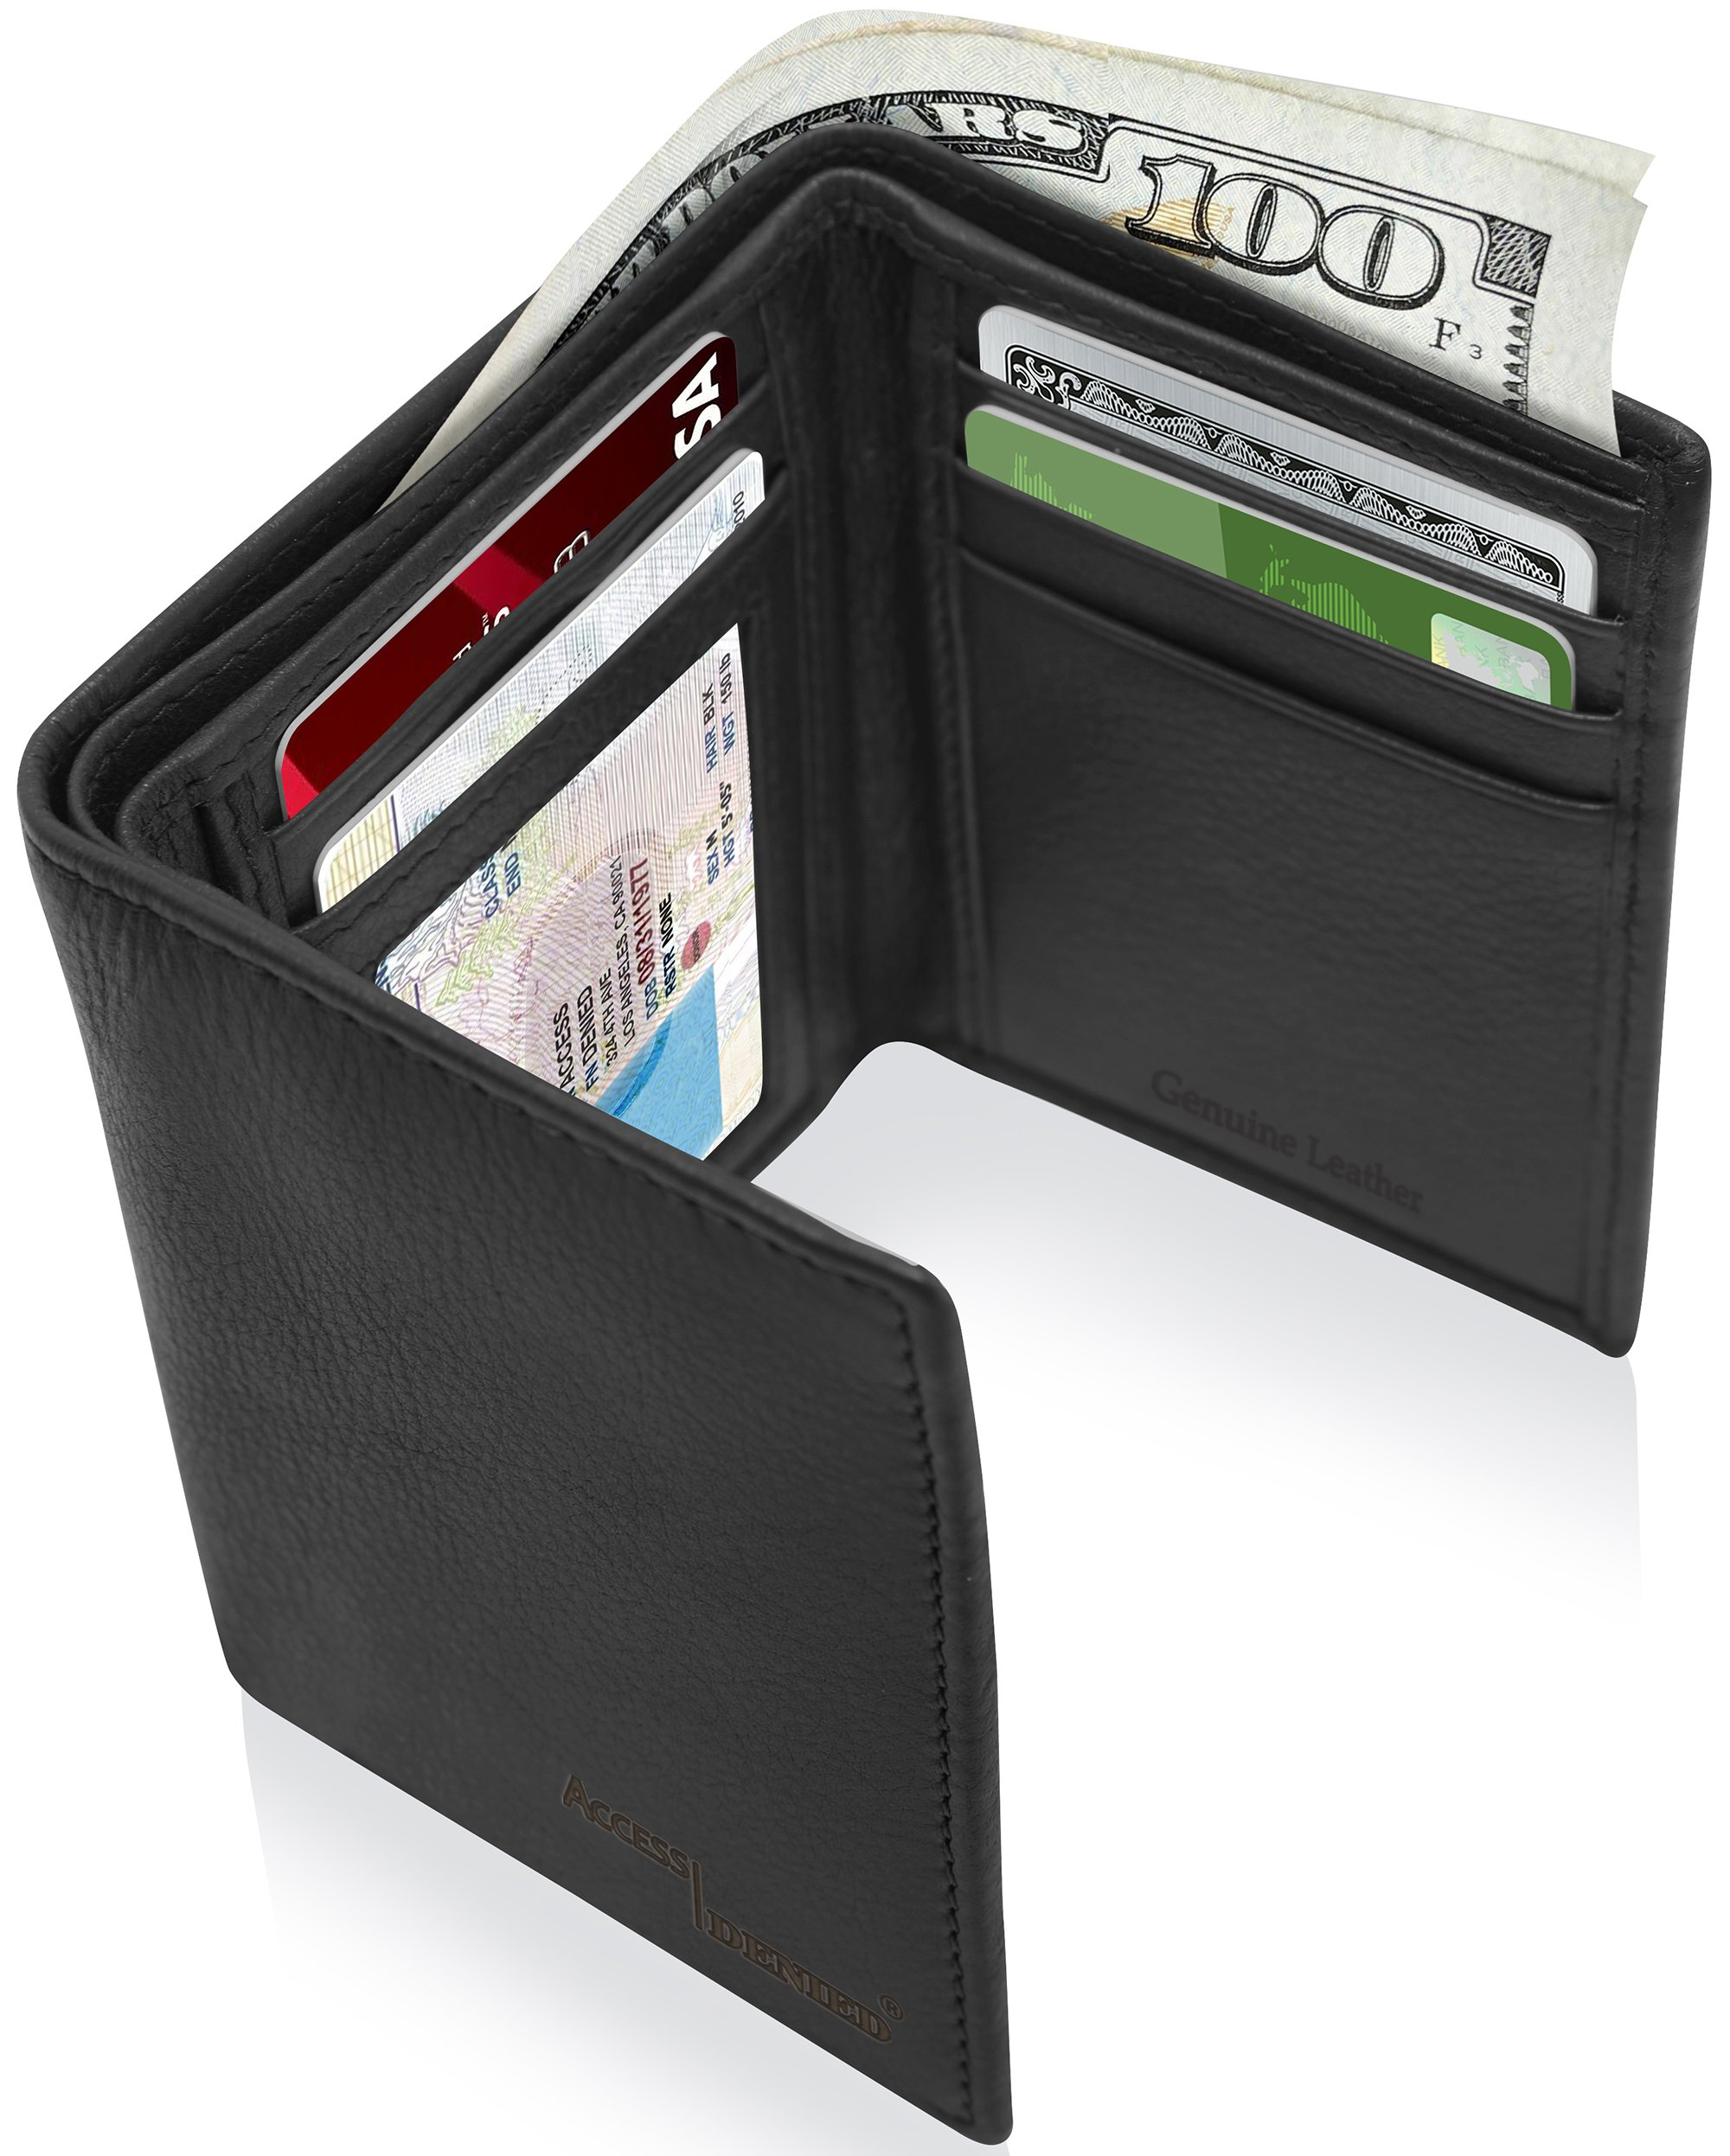 Genuine Leather Wallets For Men - Trifold Mens Wallet With ID Window RFID Blocking,Smooth Black